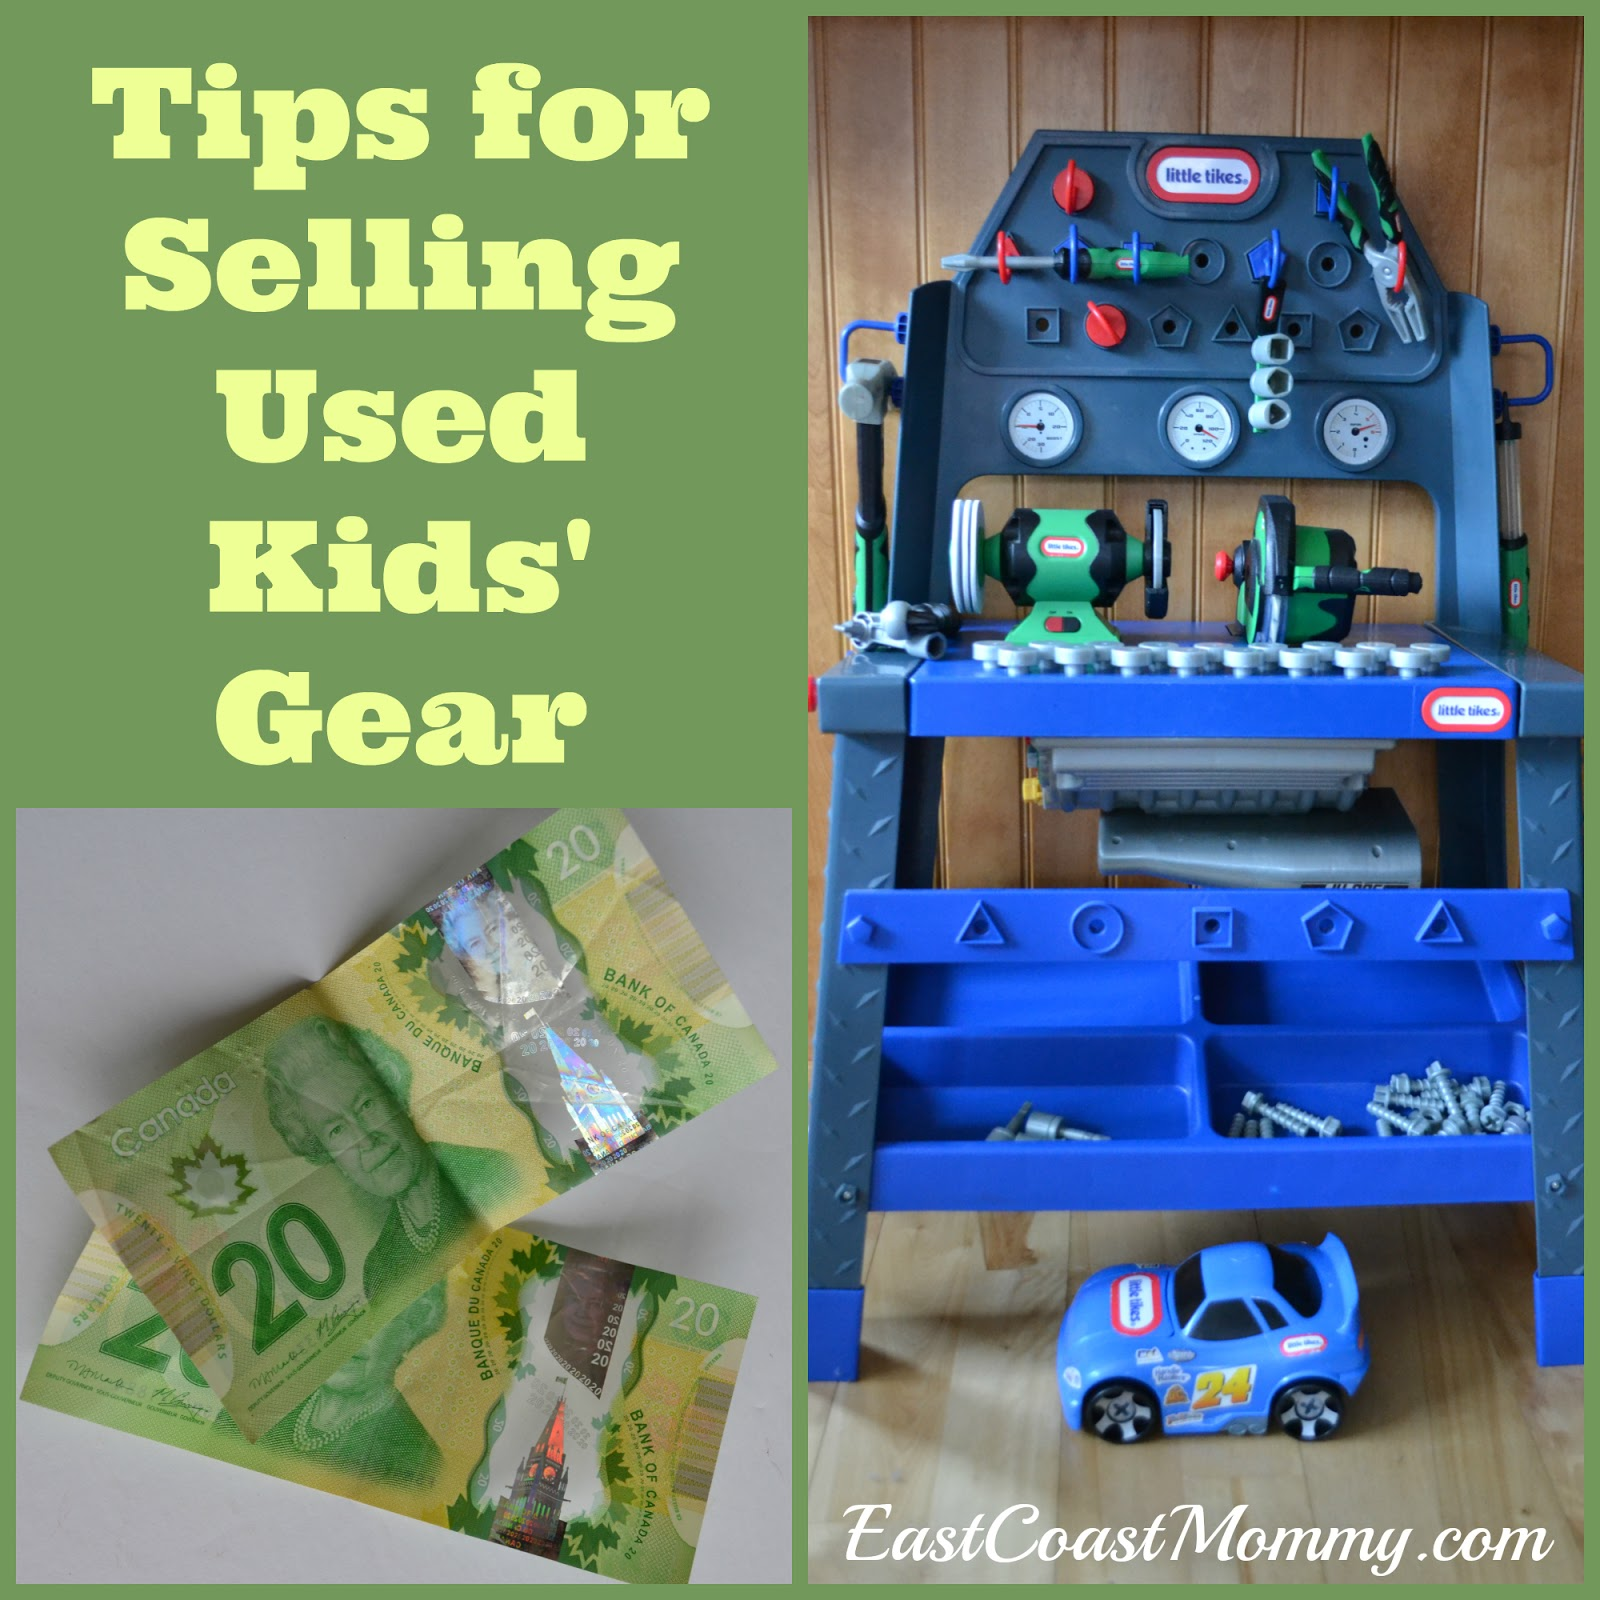 East Coast Mommy 5 Tips for Selling Kids Gear and making money